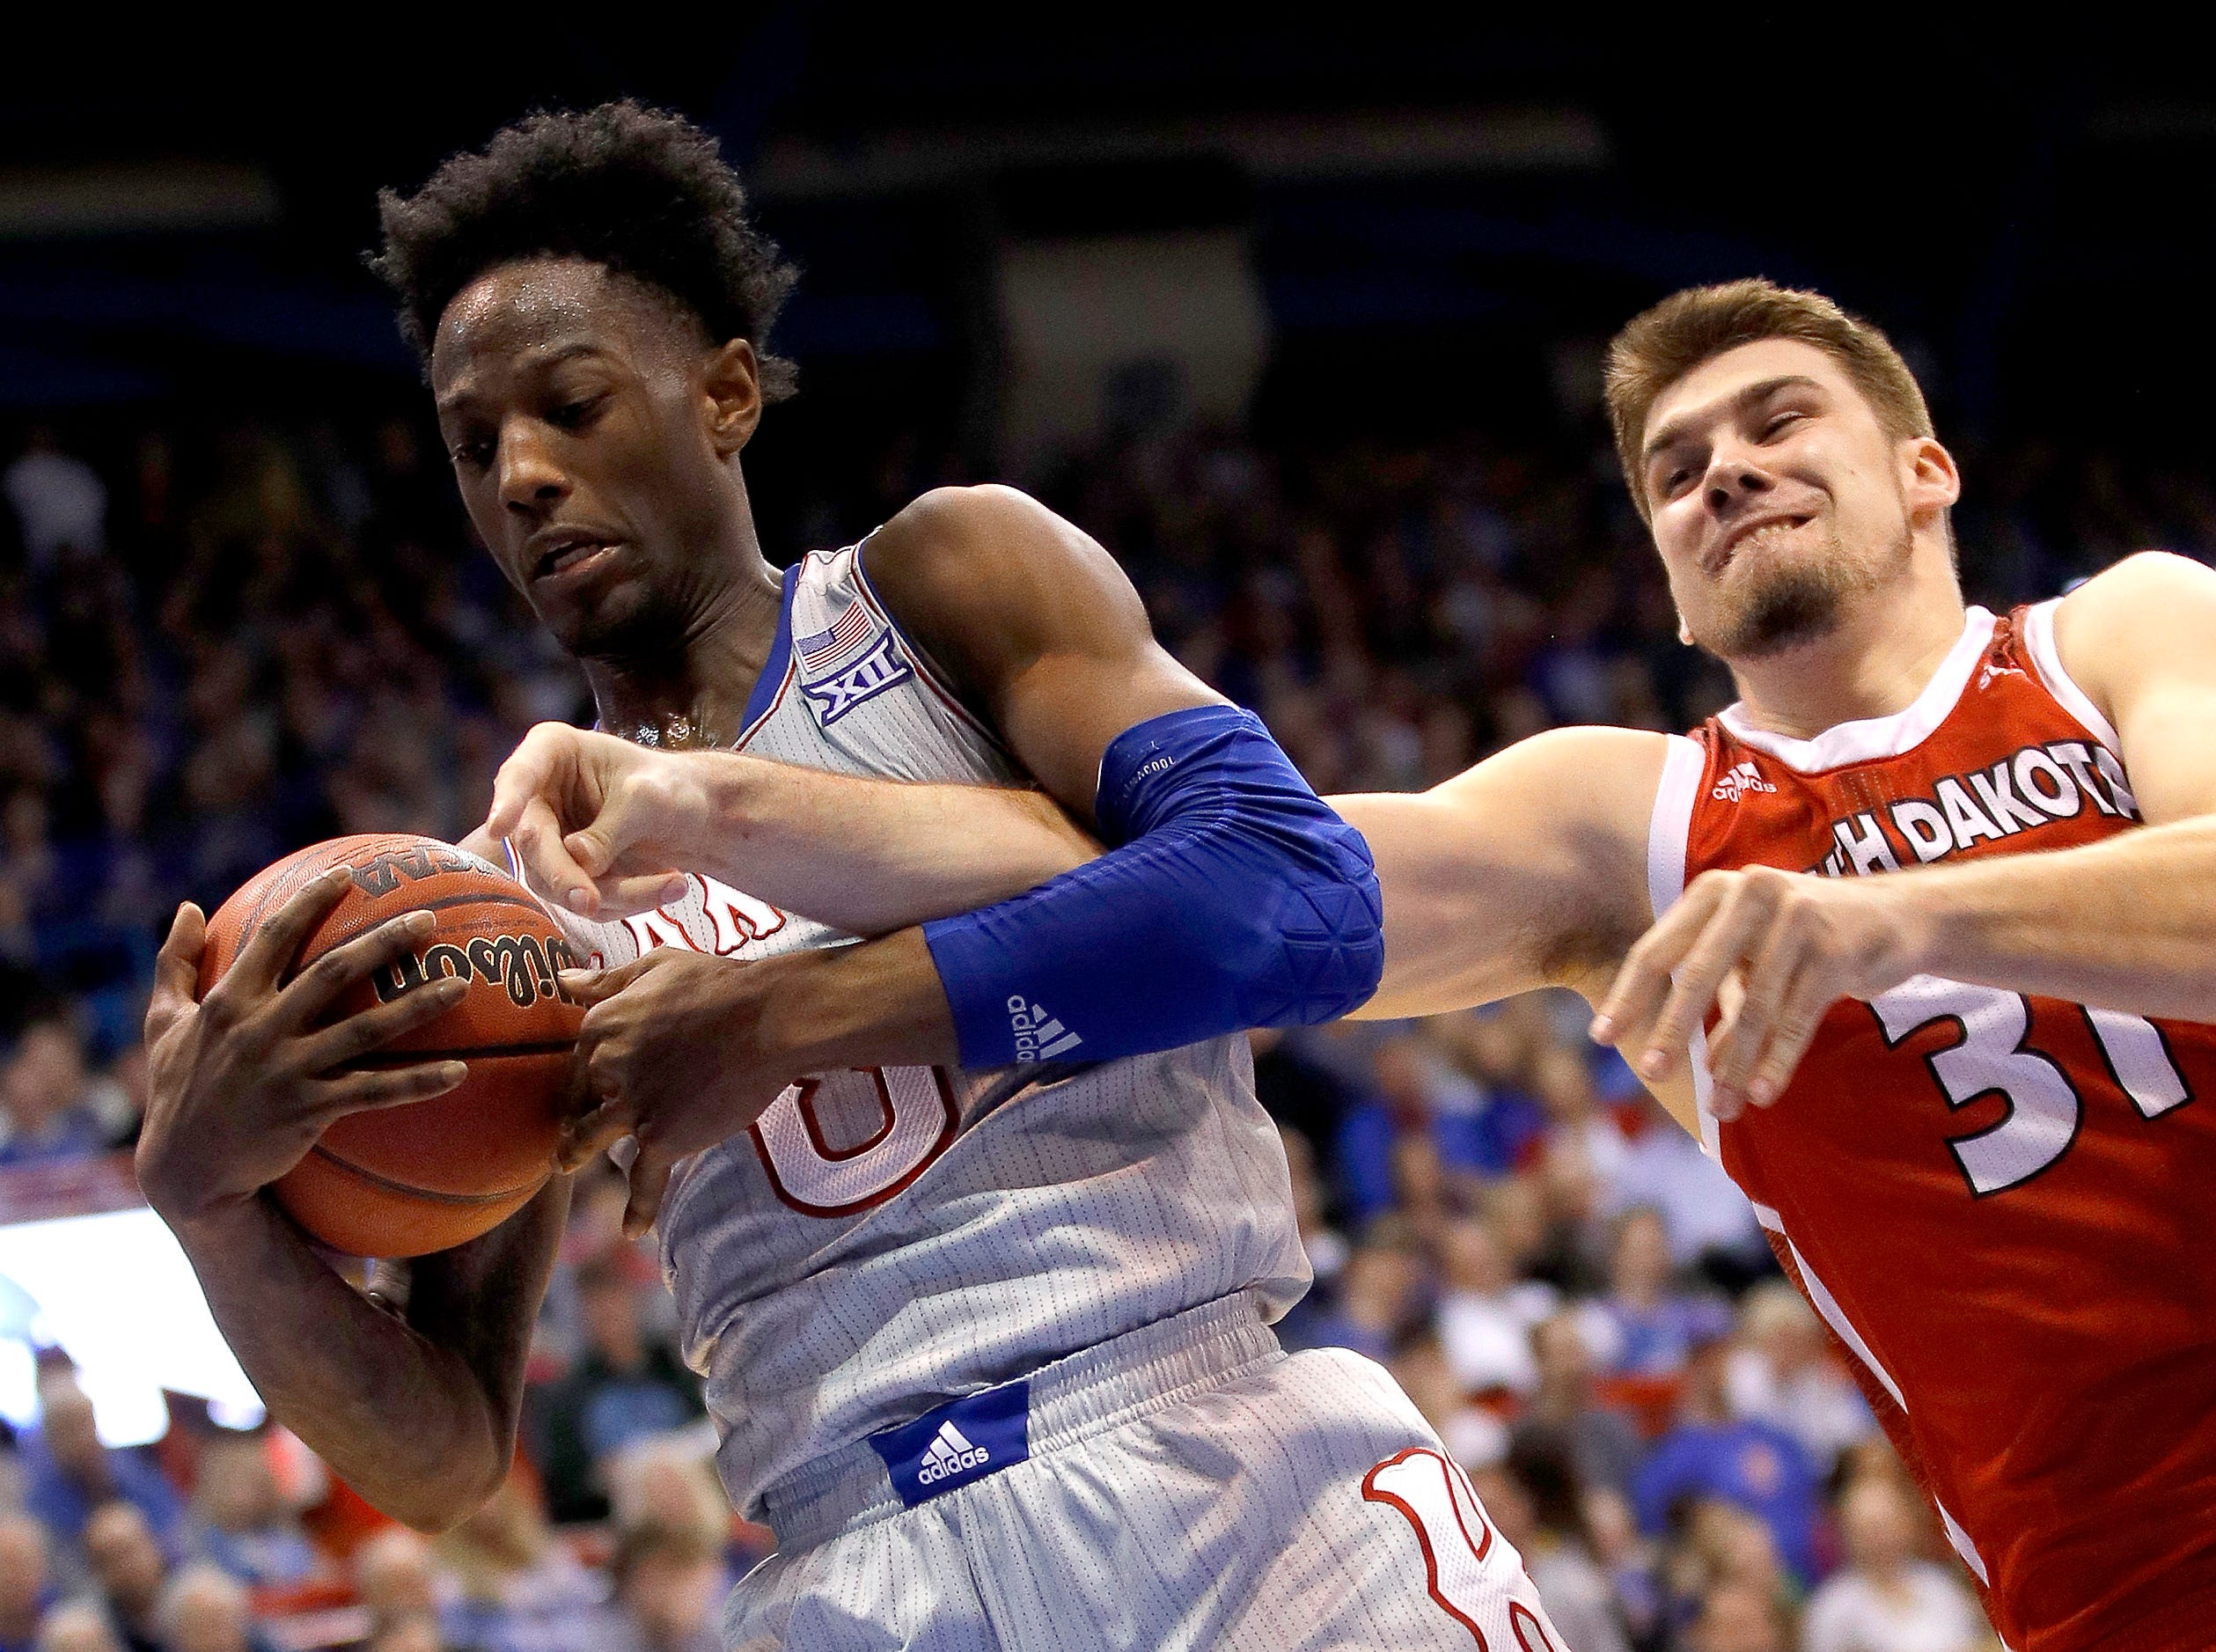 South Dakota's Dan Jech (31) tries to steal the ball from Kansas' Marcus Garrett (0) during the second half of an NCAA college basketball game Tuesday, Dec. 18, 2018, in Lawrence, Kan. Kansas won 89-53. (AP Photo/Charlie Riedel)